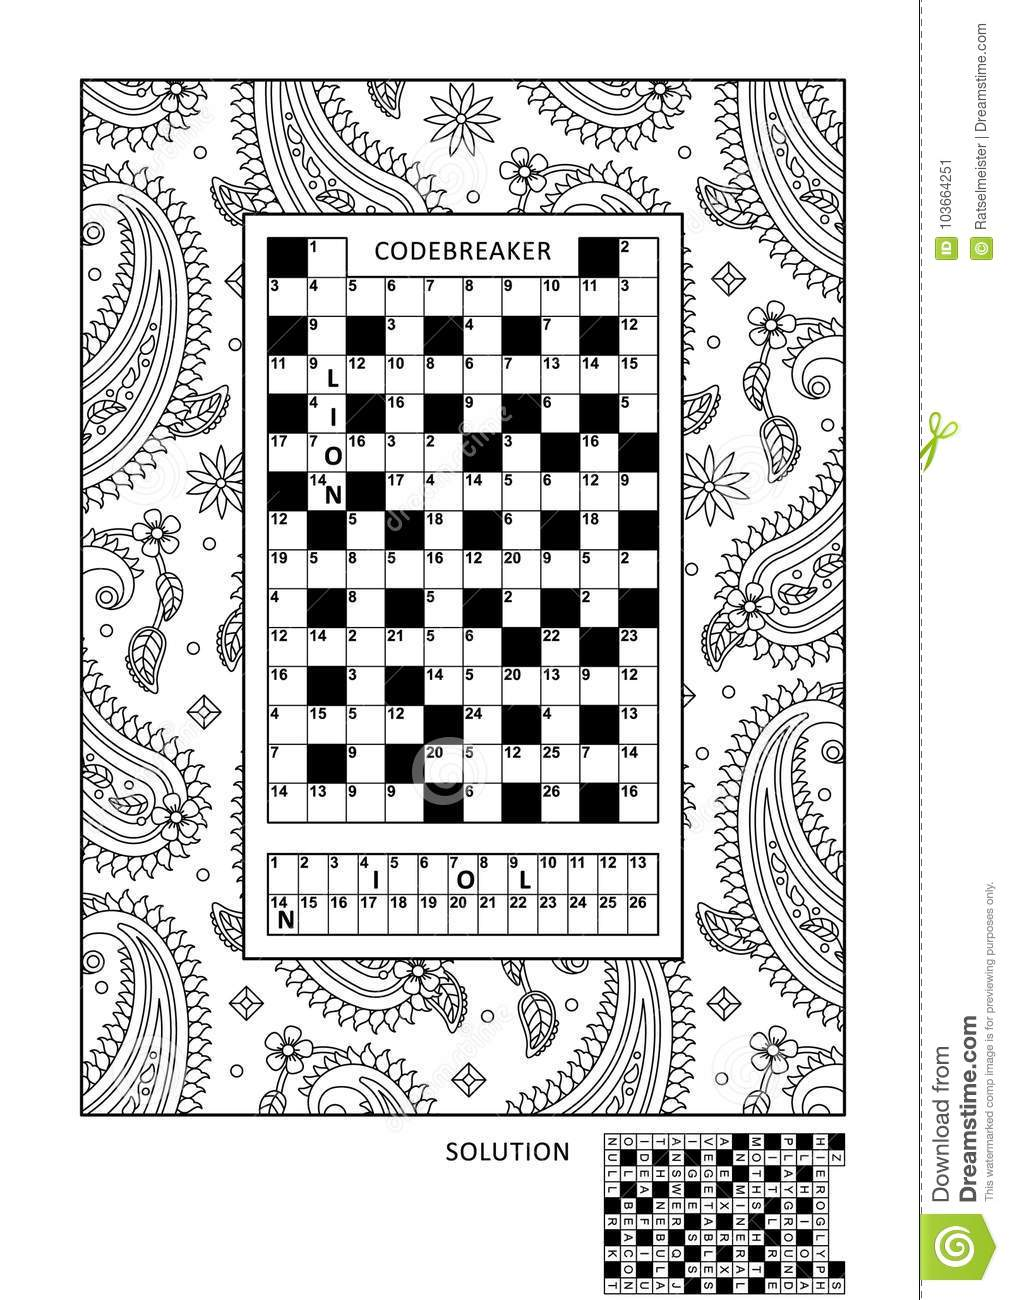 photograph relating to Codeword Puzzles Printable referred to as Puzzle And Coloring Recreation Site For Grown ups Inventory Vector